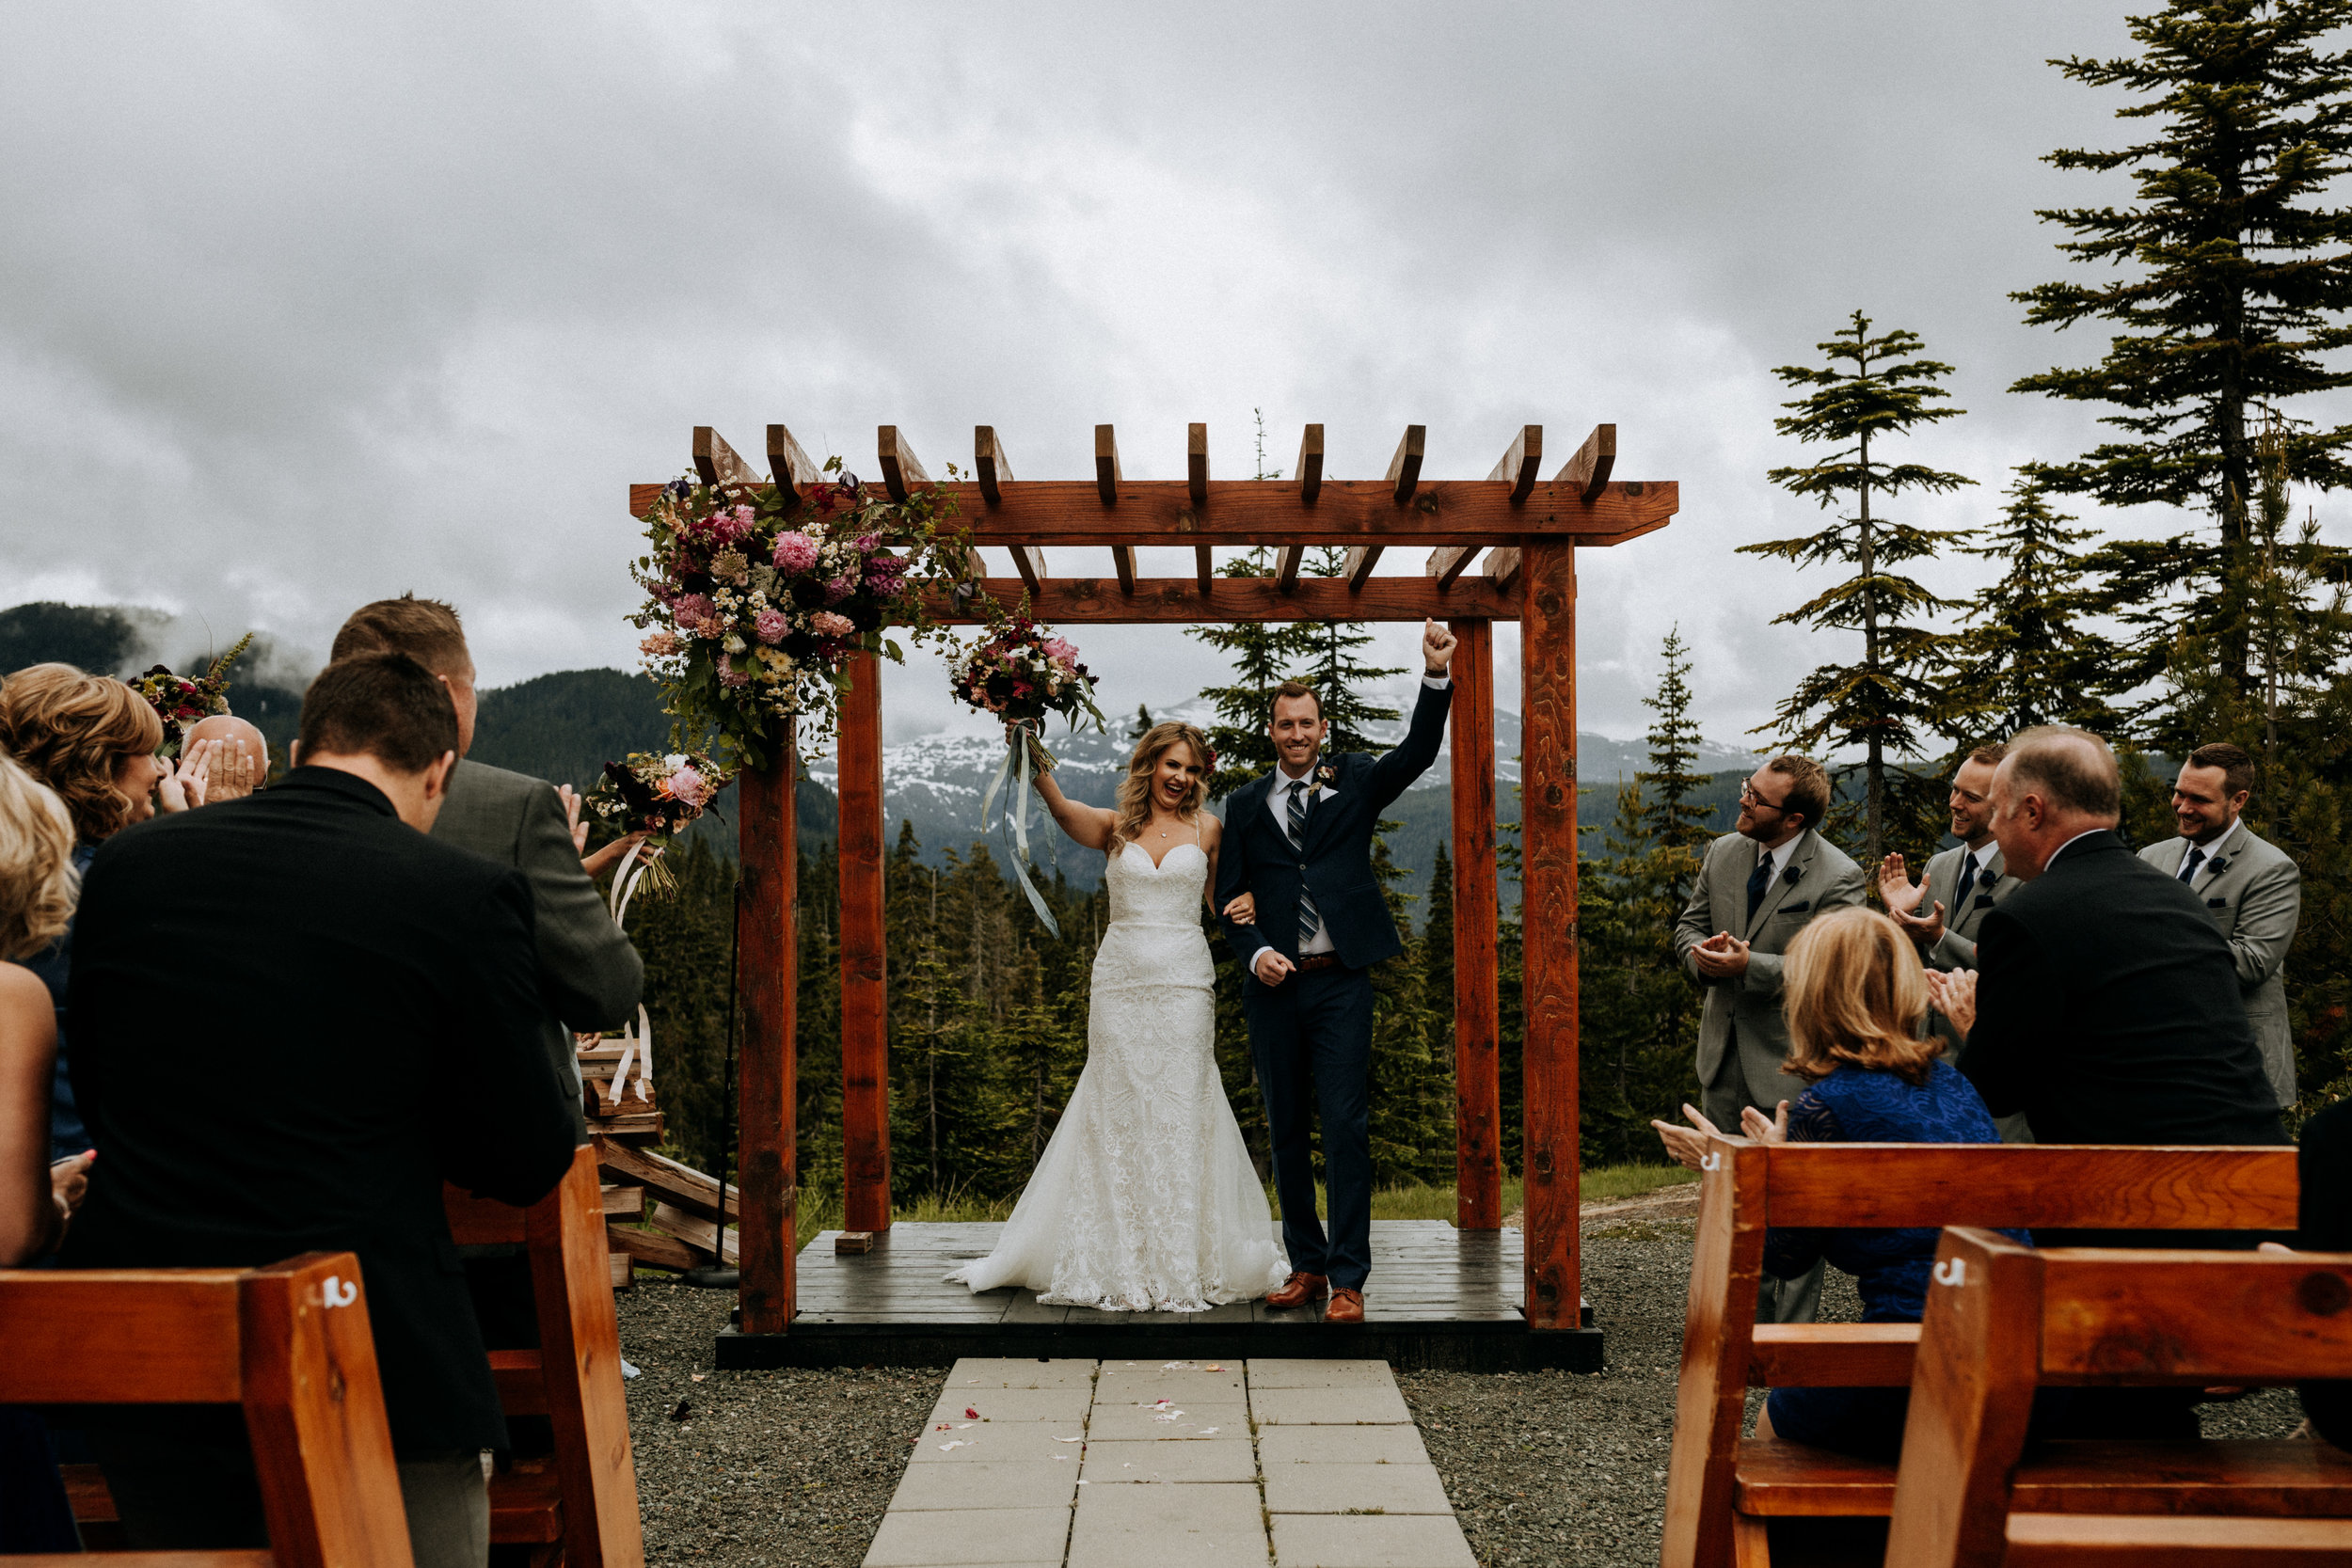 Bride and groom celebrate being married, Mount Washington Wedding photographer